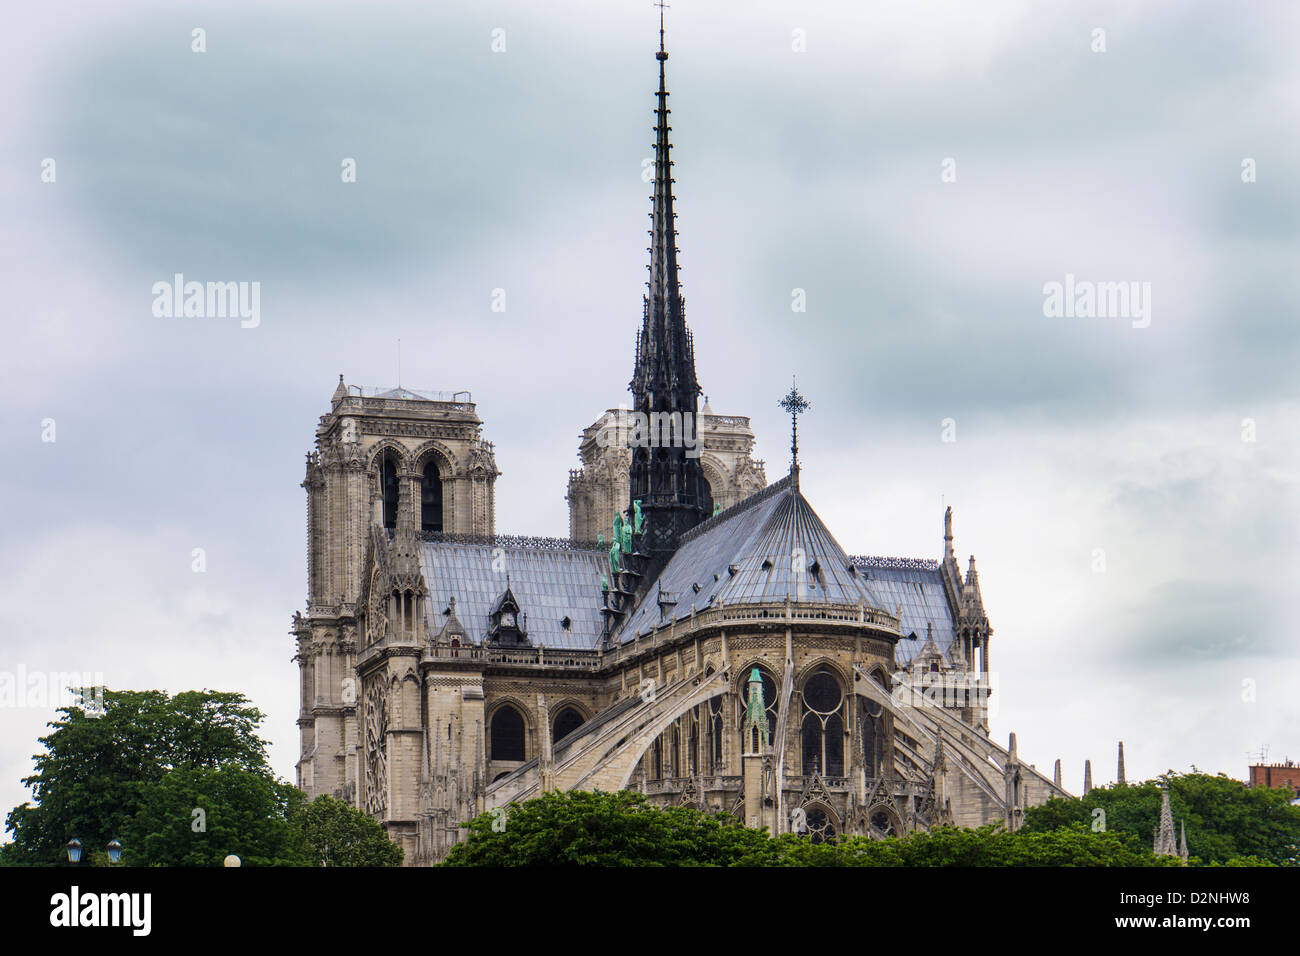 Notre Dame Cathedral in Paris France - Stock Image